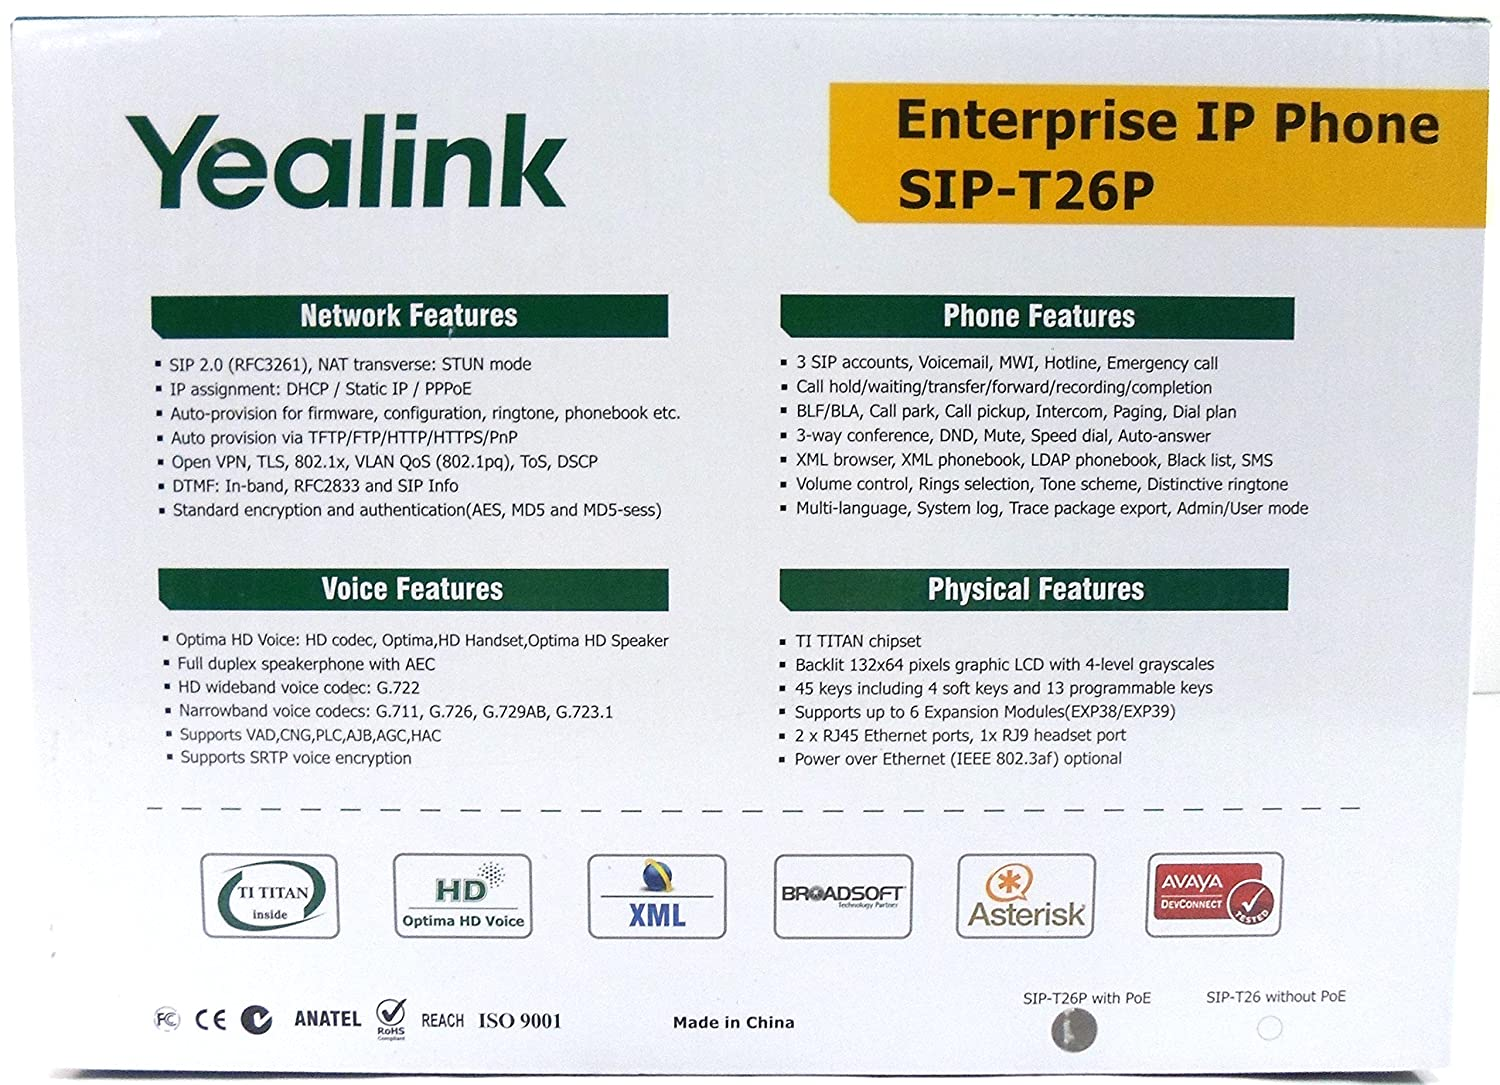 YEALINK SIP-T26P 13 Buttons Enterprise IP Phone with 6-Line